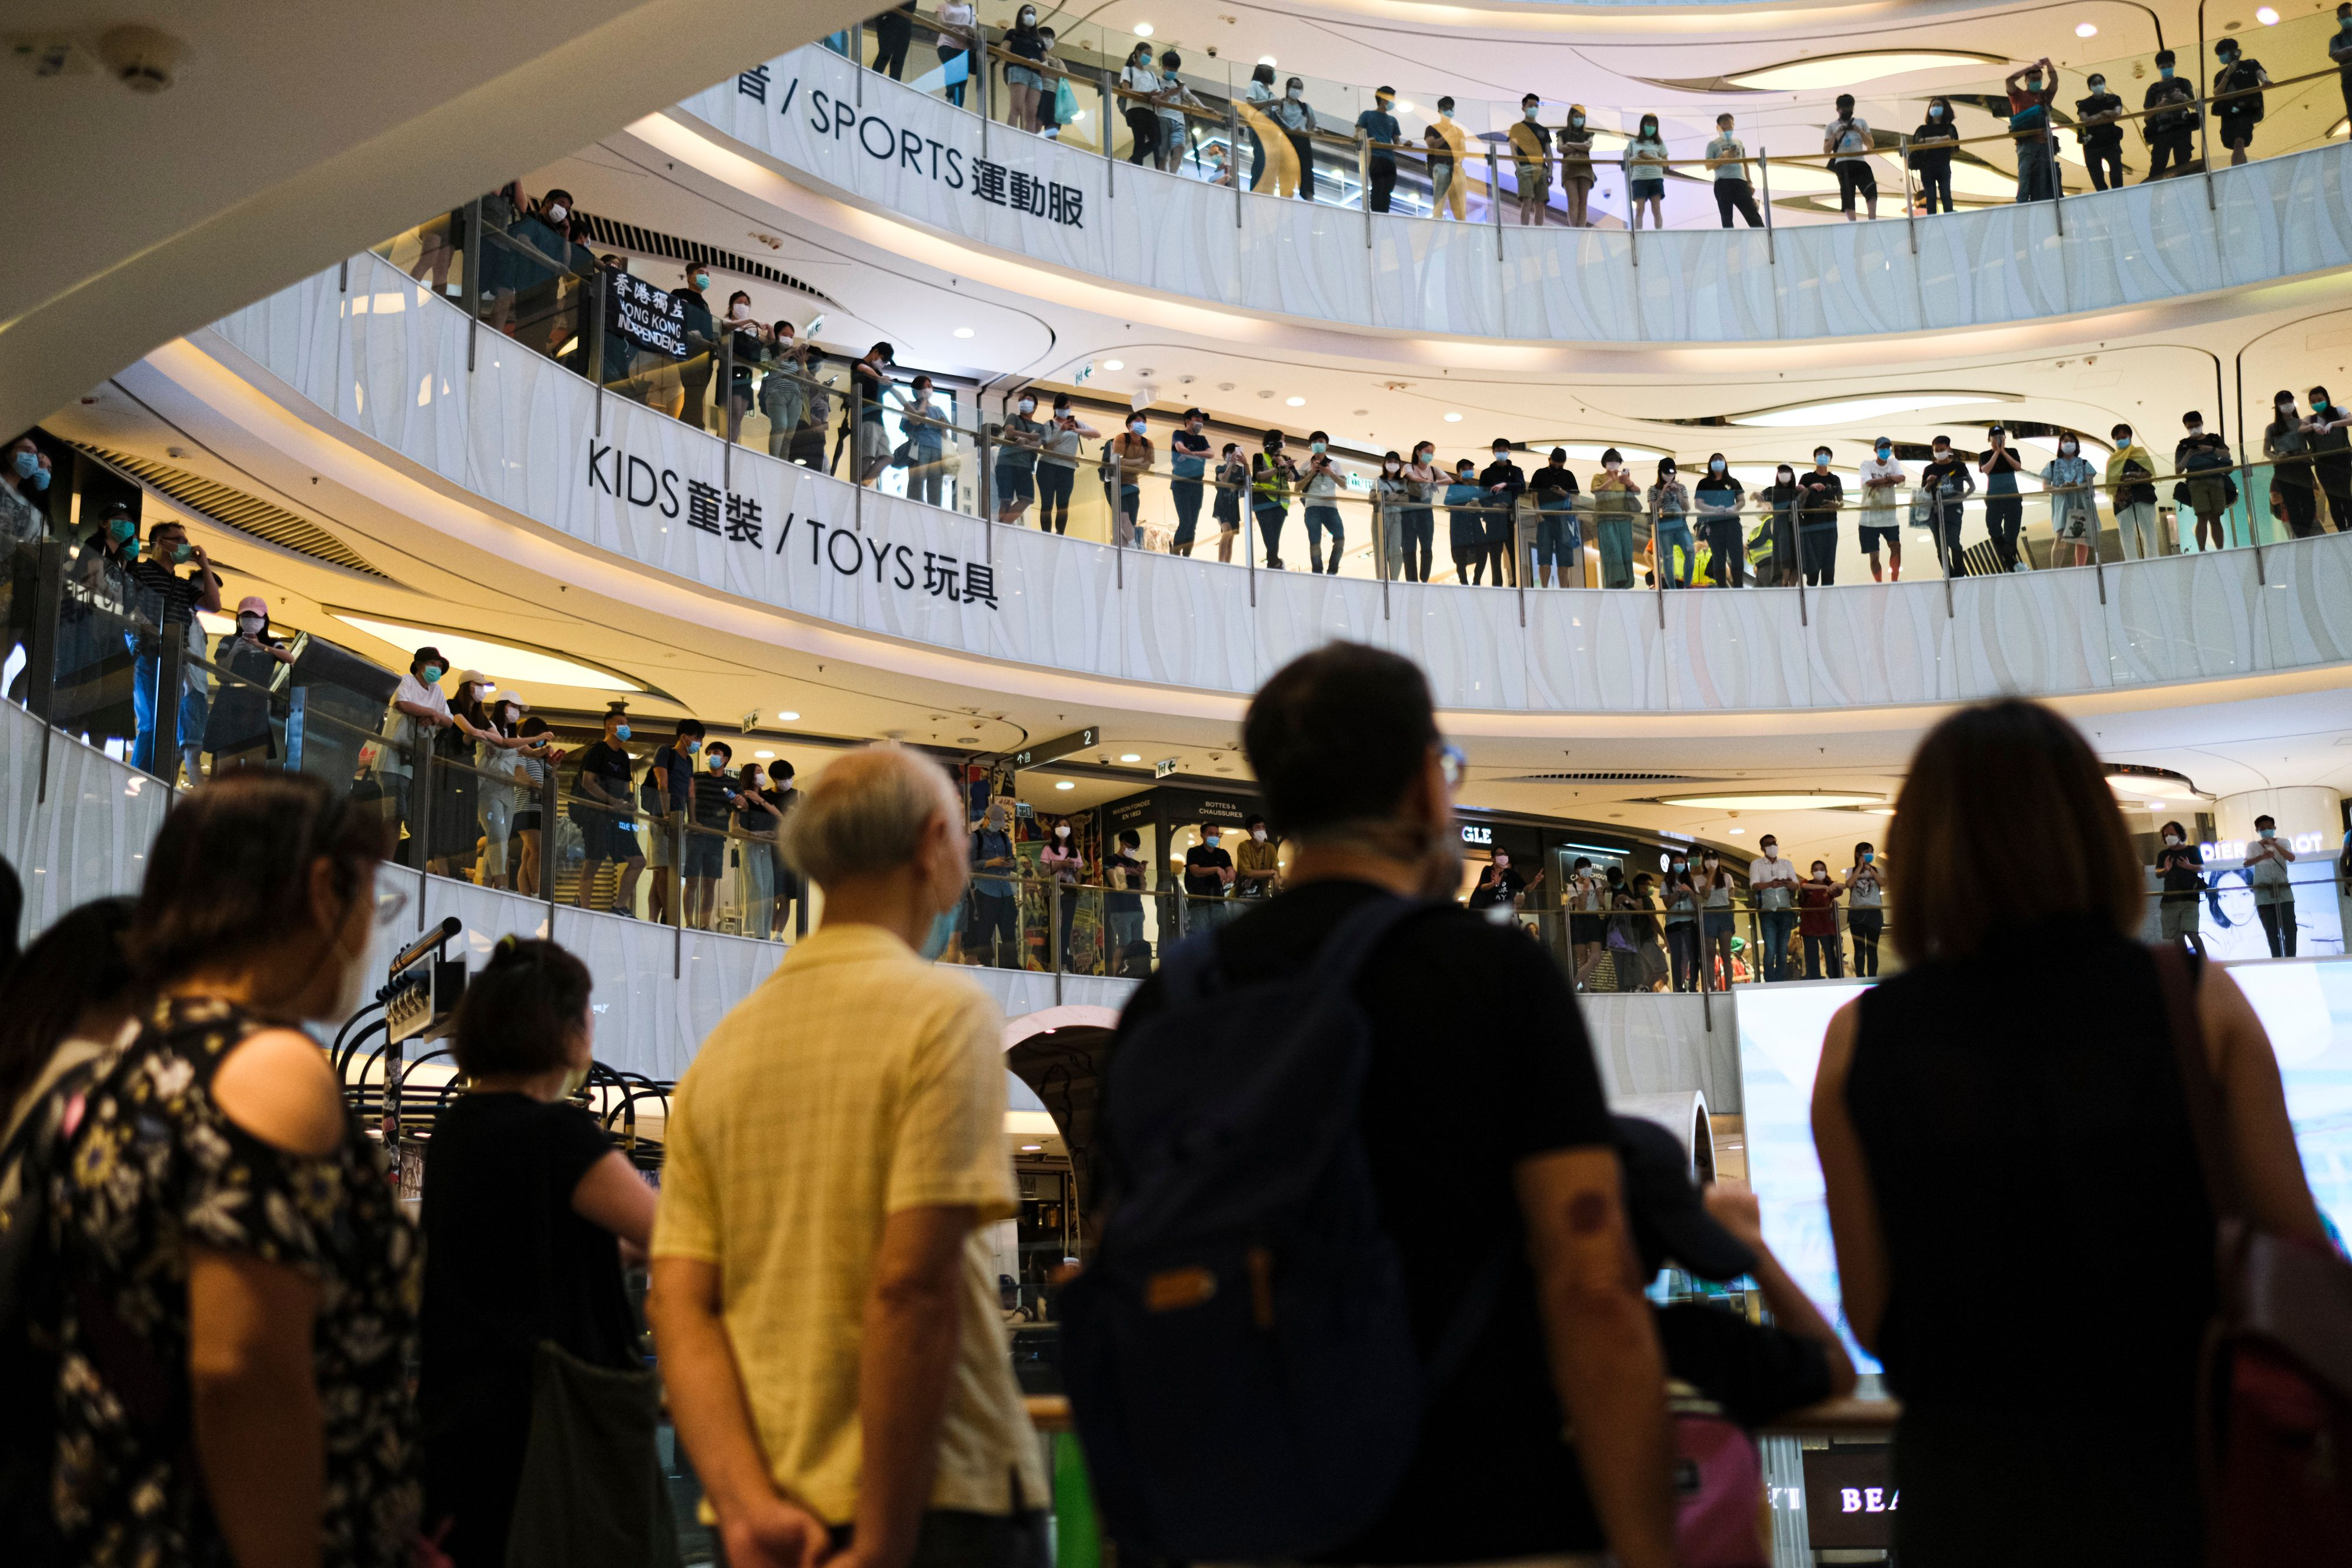 Police were sent in to disperse a flash mob gathering of protesters in a shopping mall on May 10, 2020.